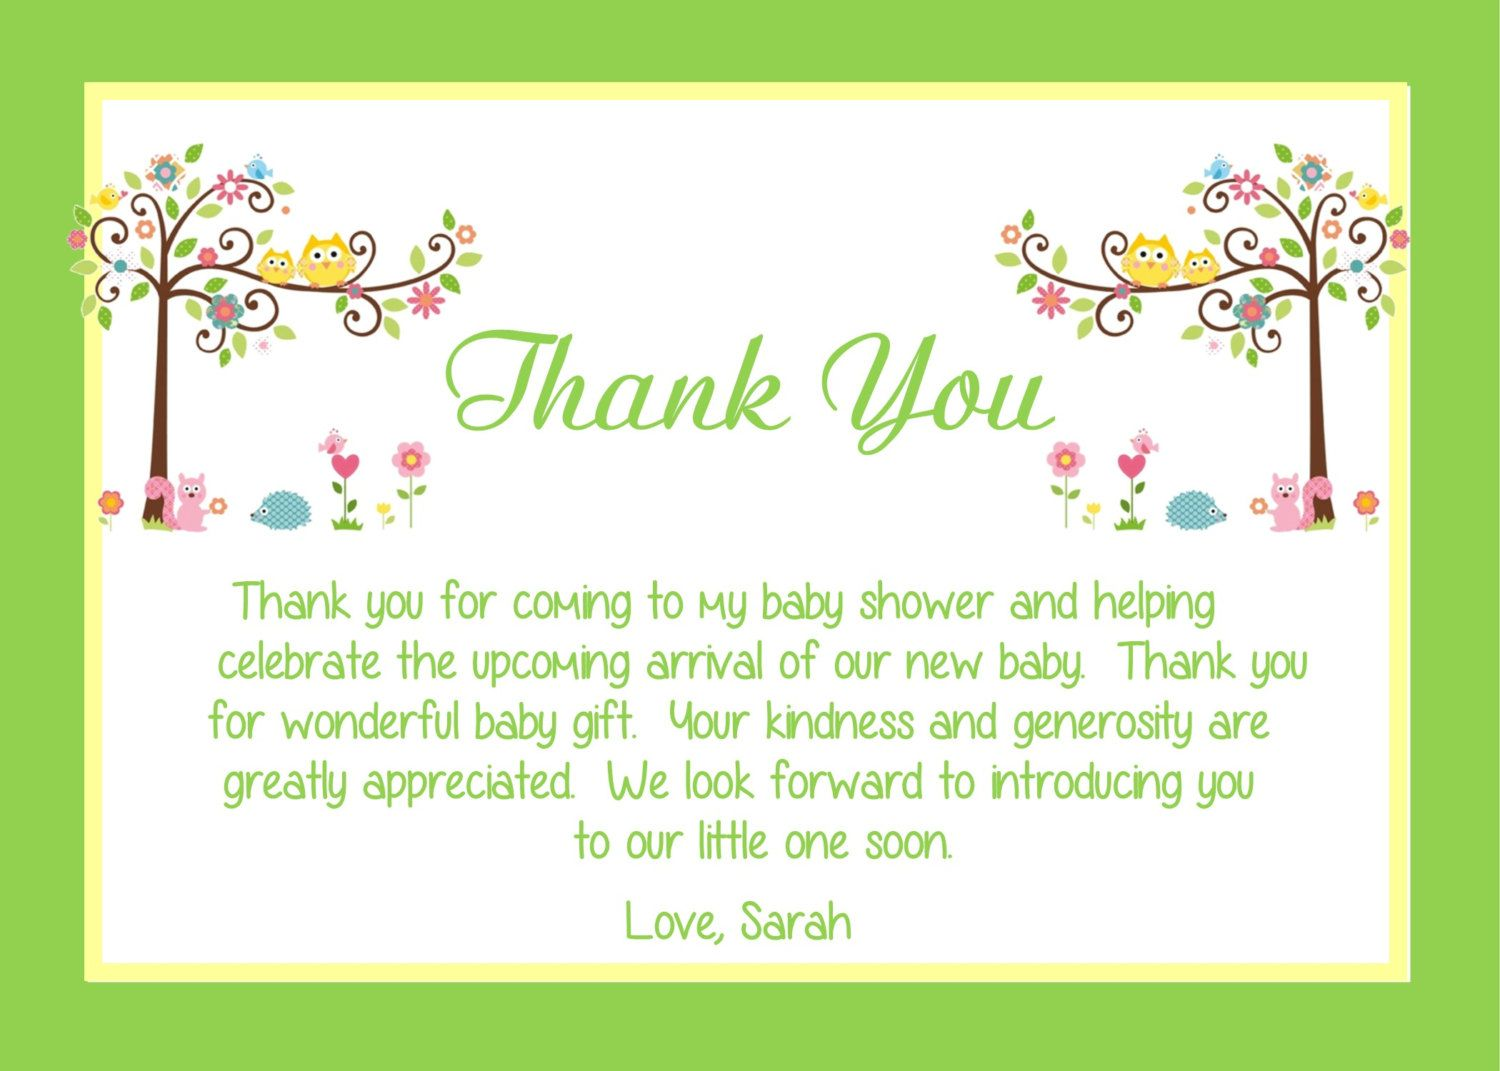 Baby-Shower-Thank-You-Card-Wording-Ideas - BabySof  Baby shower